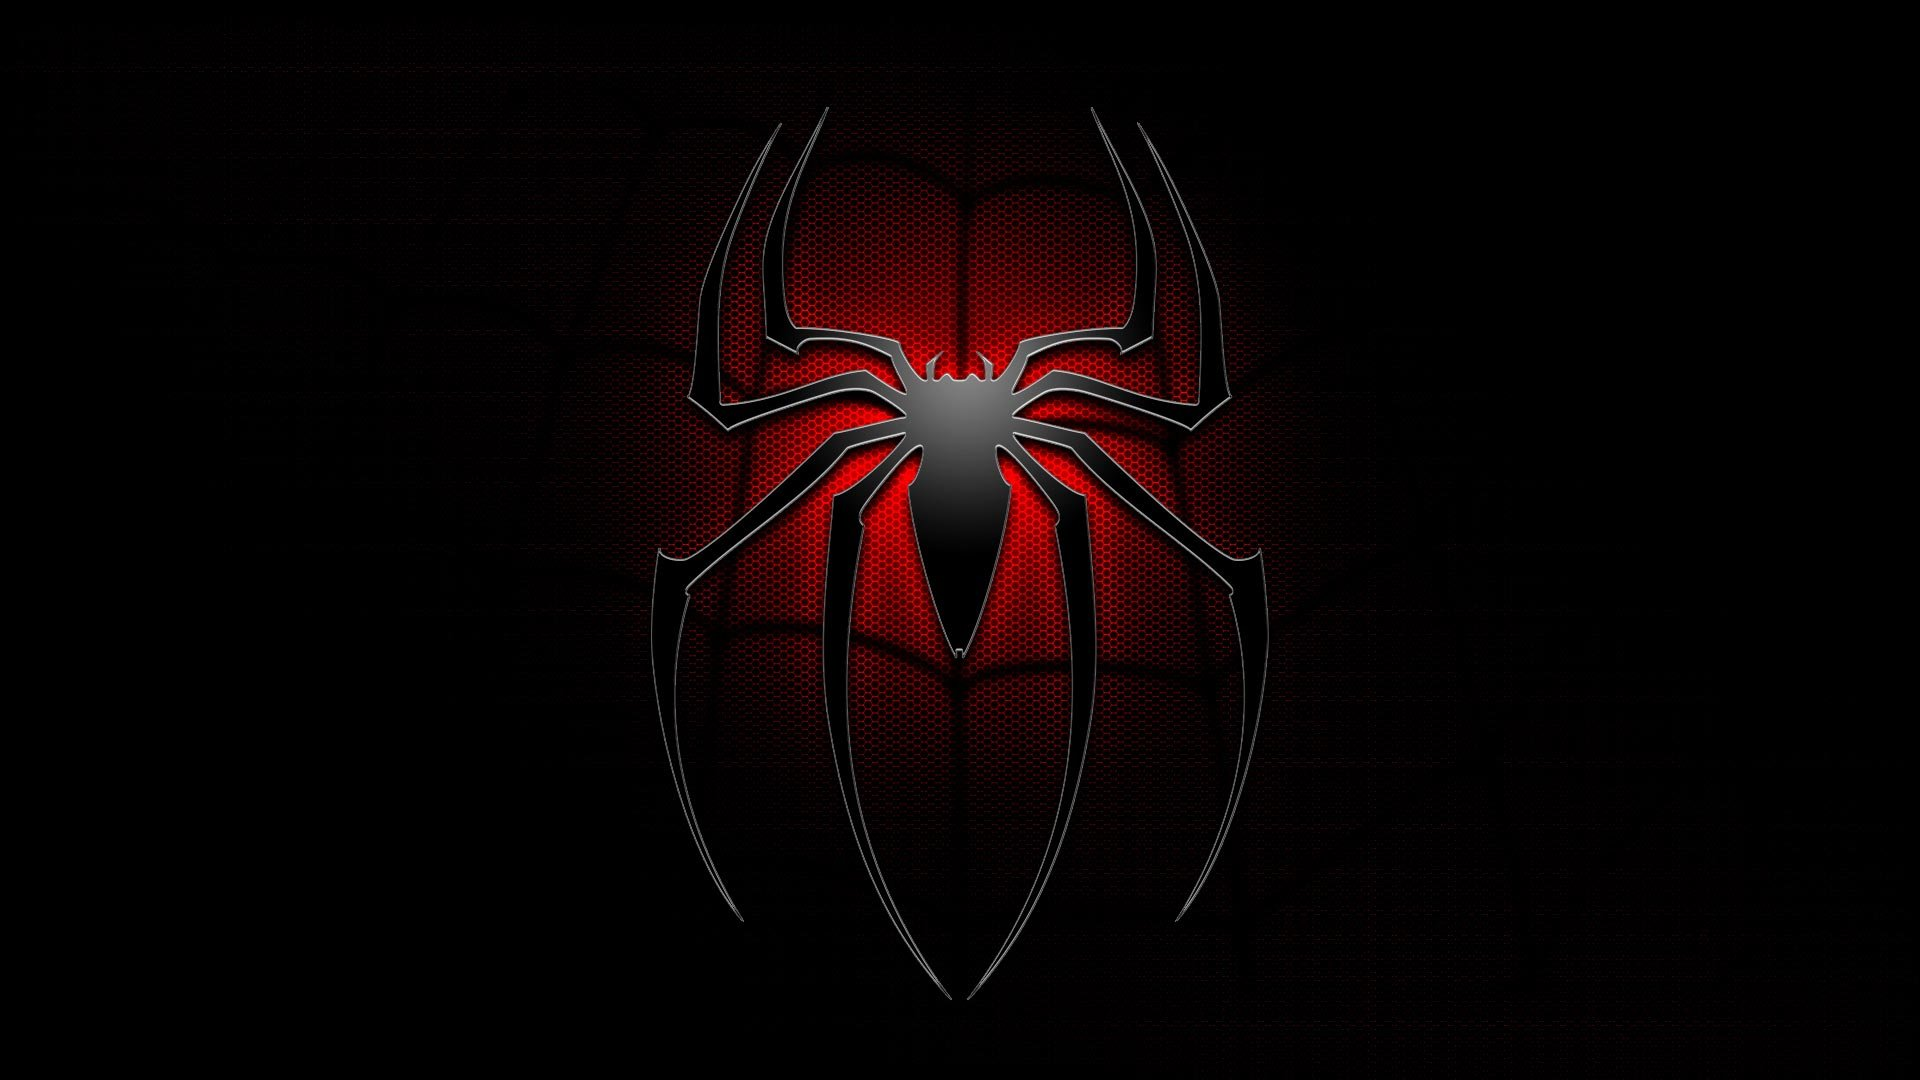 Download Spiderman Logo HD Wallpaper 6518 Full Size 1920x1080